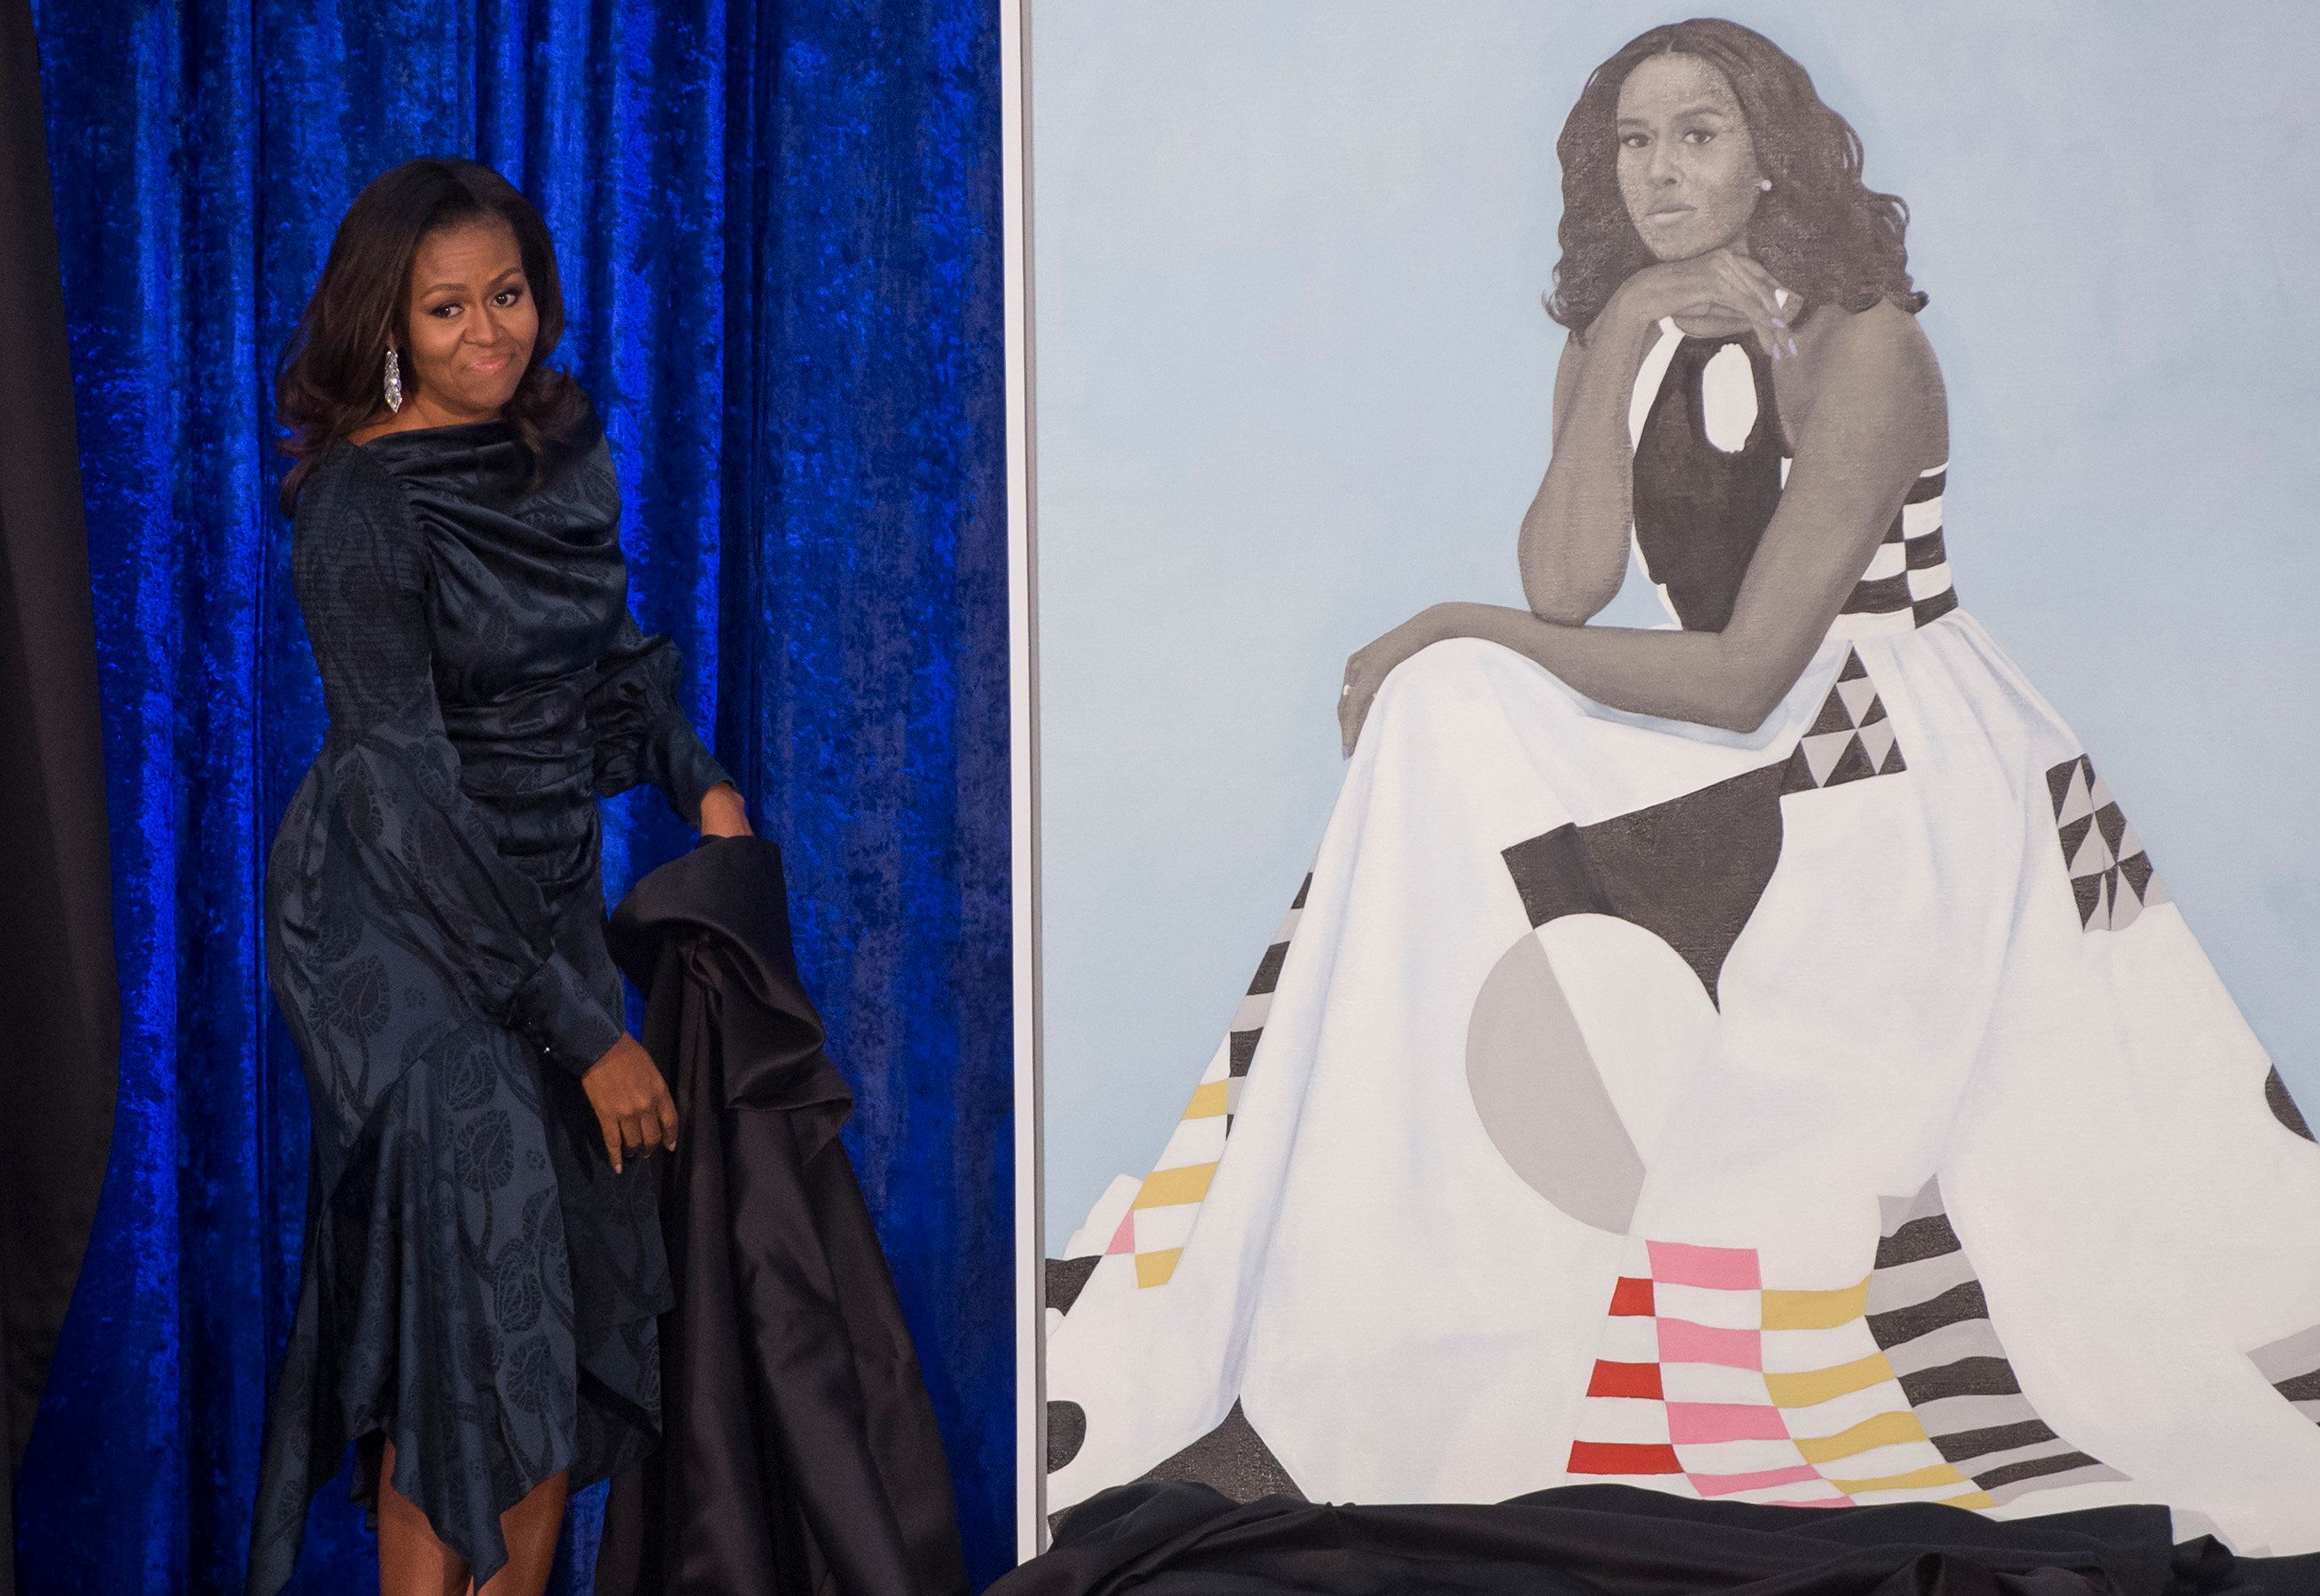 Michelle Obama unveils her official portrait at the Smithsonian's National Portrait Gallery in Washington. It has drawn such